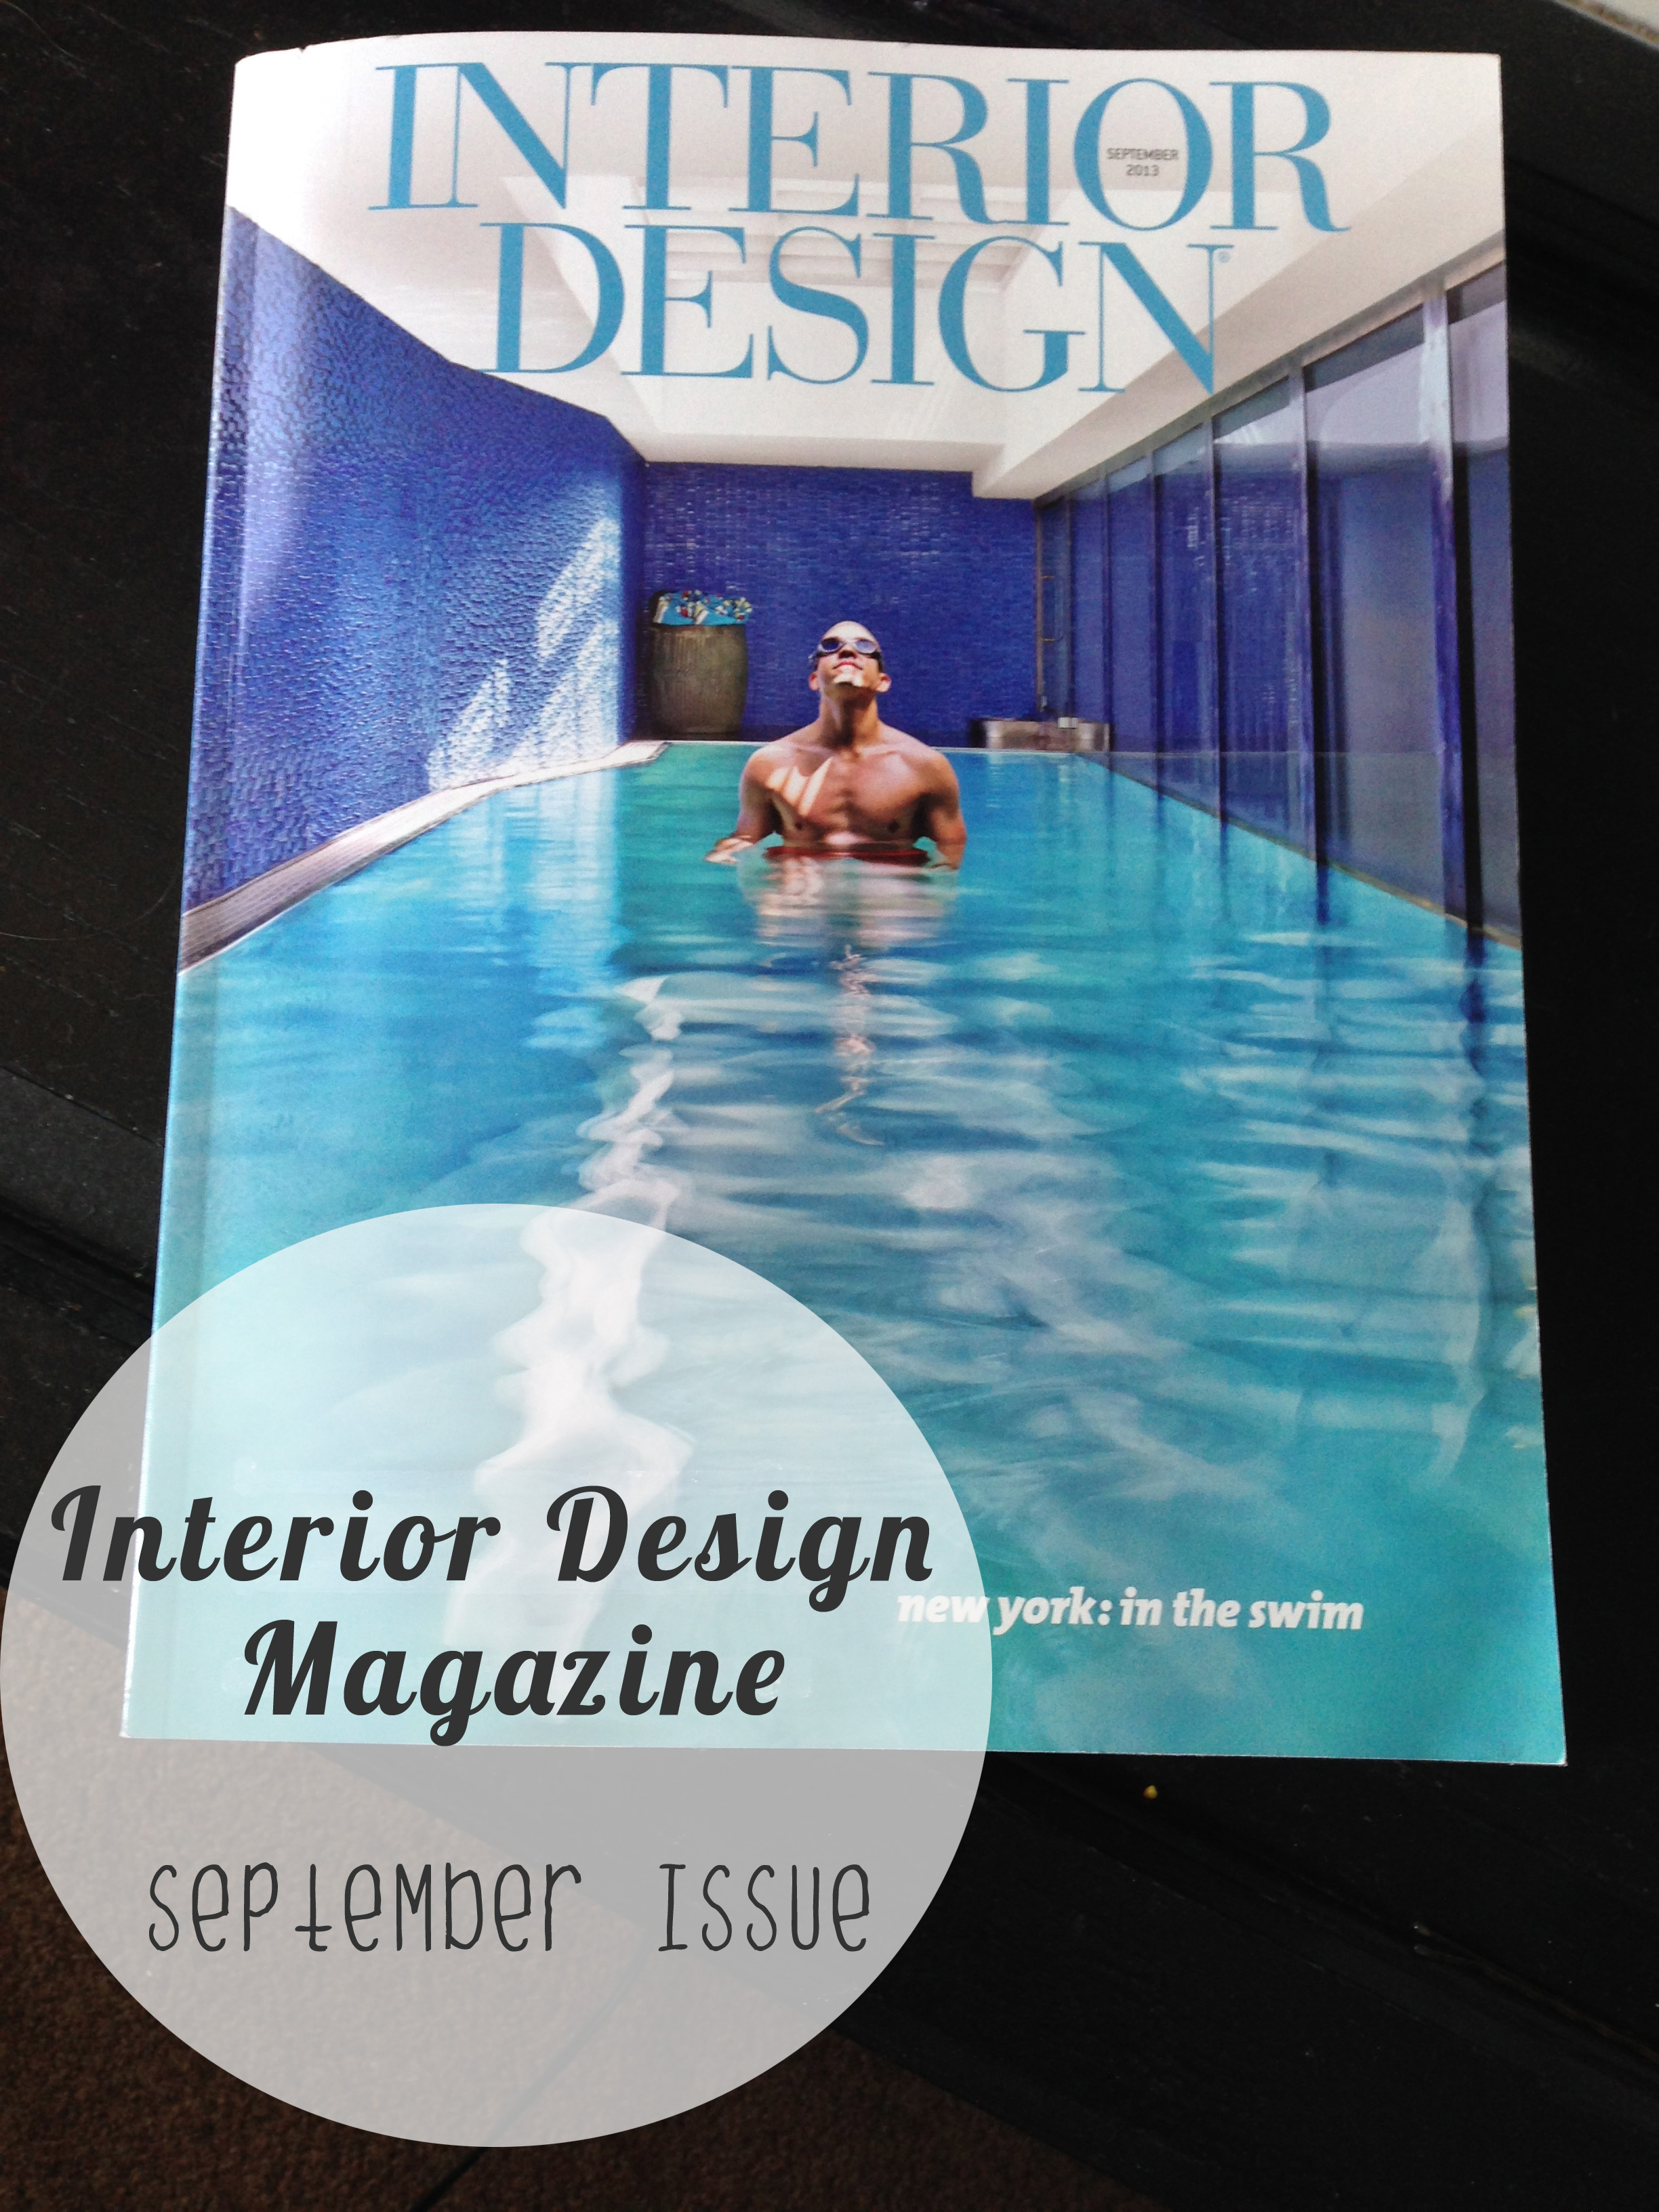 Dennis paphitis the whale 39 s endeavors for Id interior design magazine